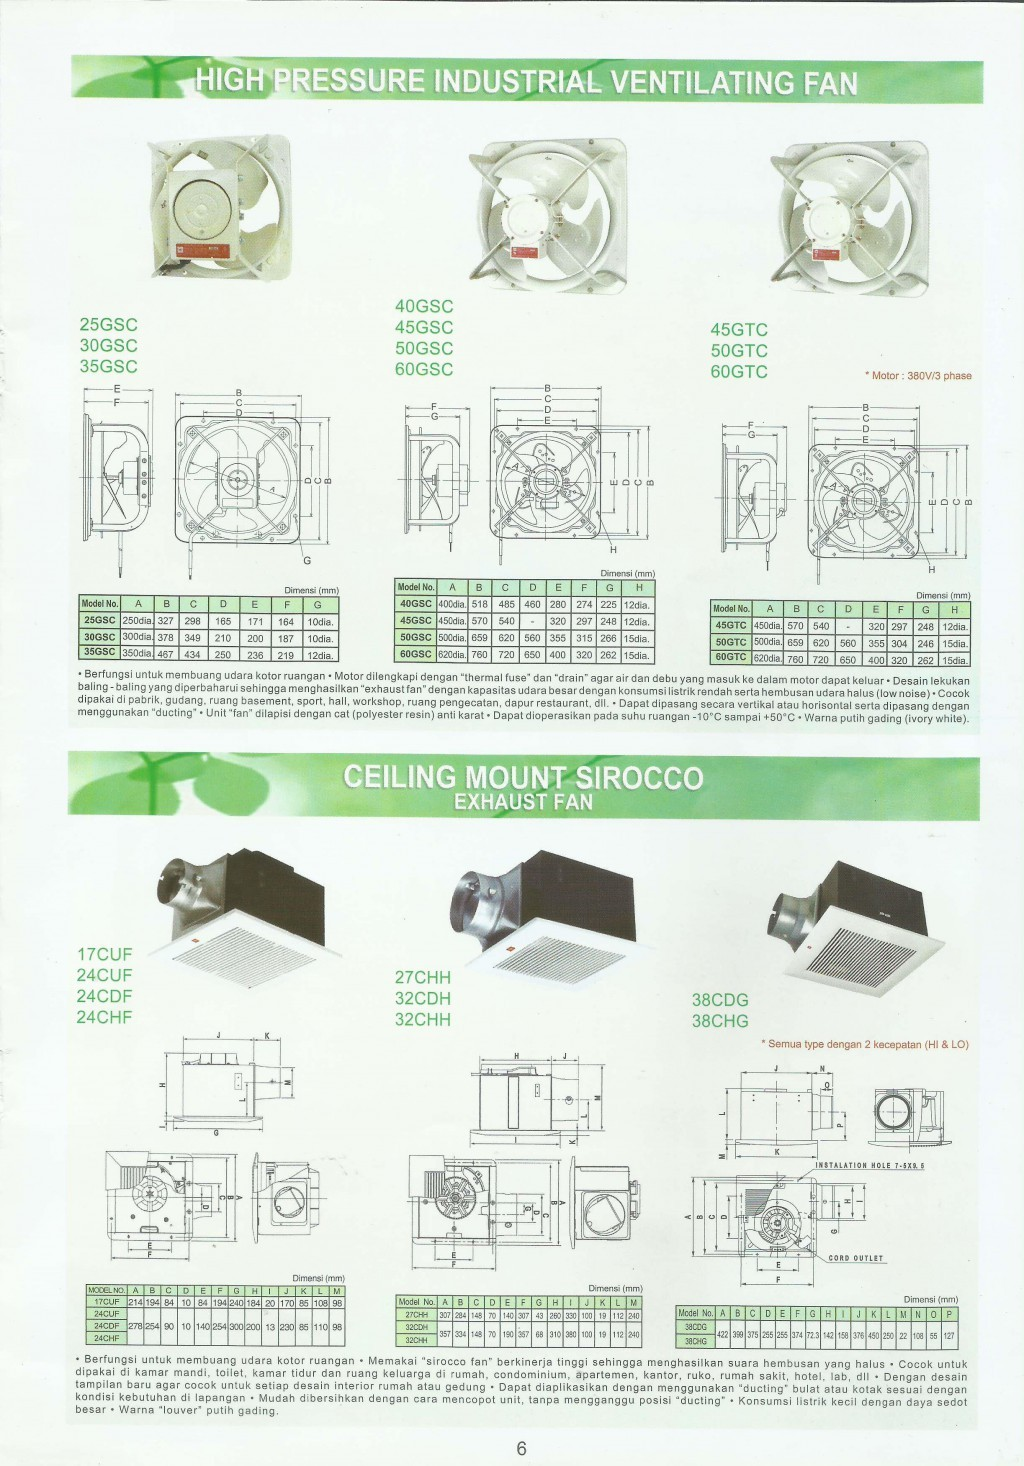 FAN, KDK, High Pressure Industrial Ventilating Fan & Ceiling Mount Sirocco Exhaust Fan